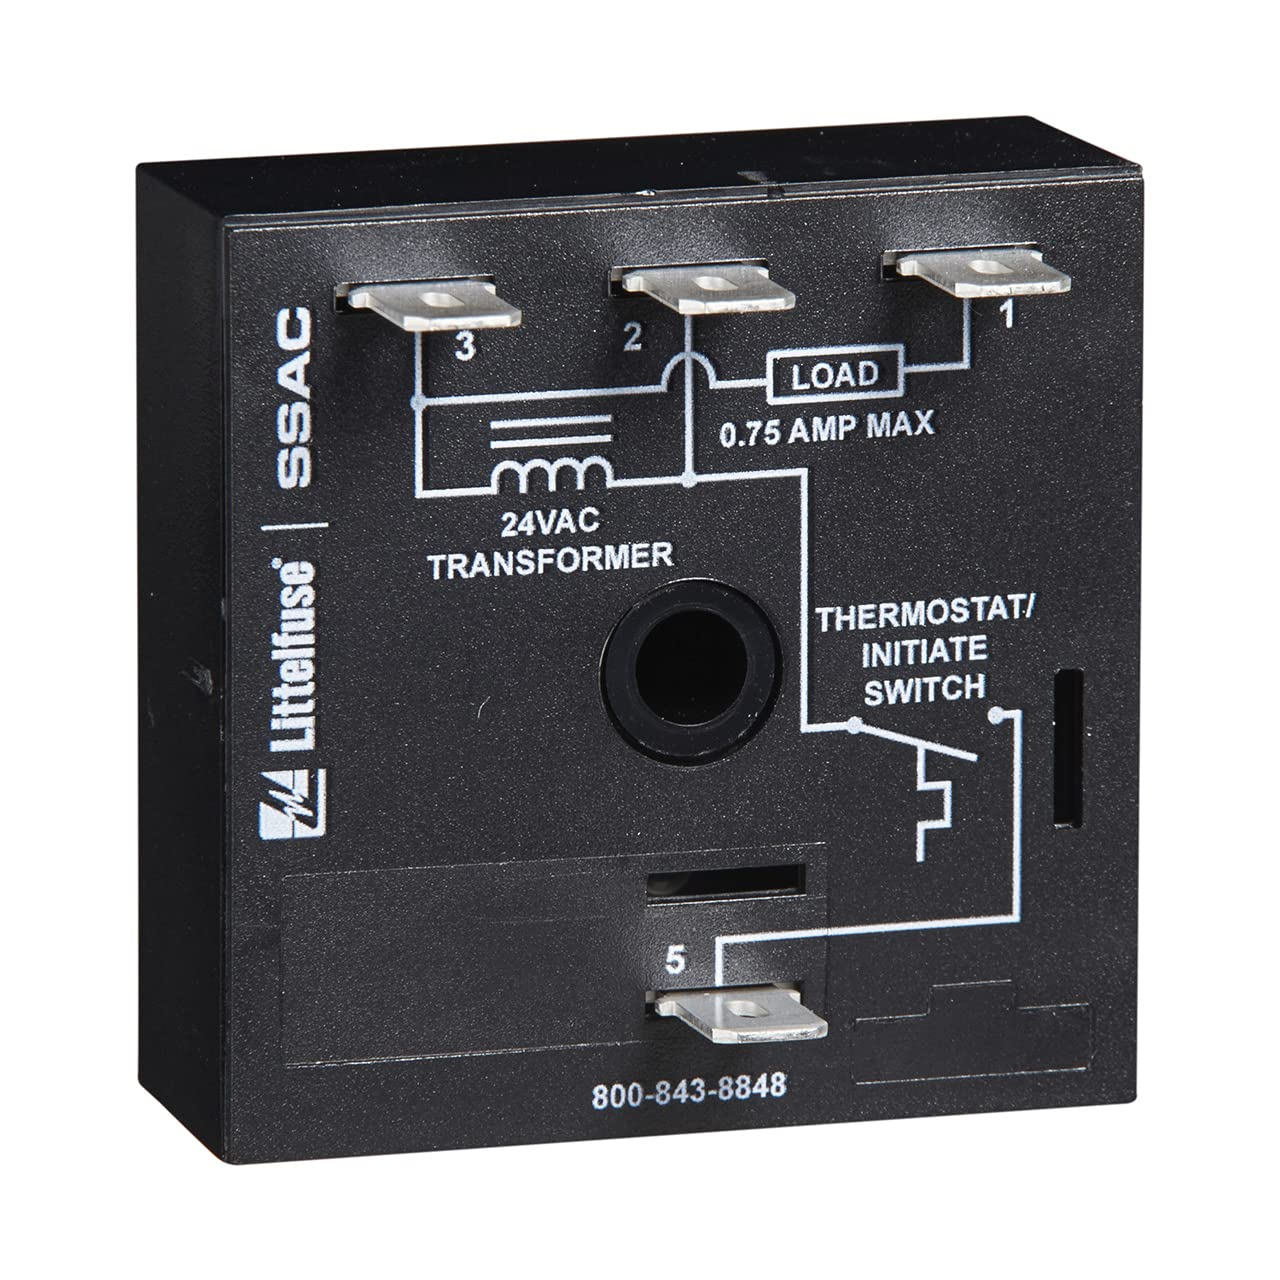 CT1S45 Time Delay Relay Limited time for free shipping 24VAC 0.75A Popular shop is the lowest price challenge SMD 1 mm 50.8x30.7x50.8